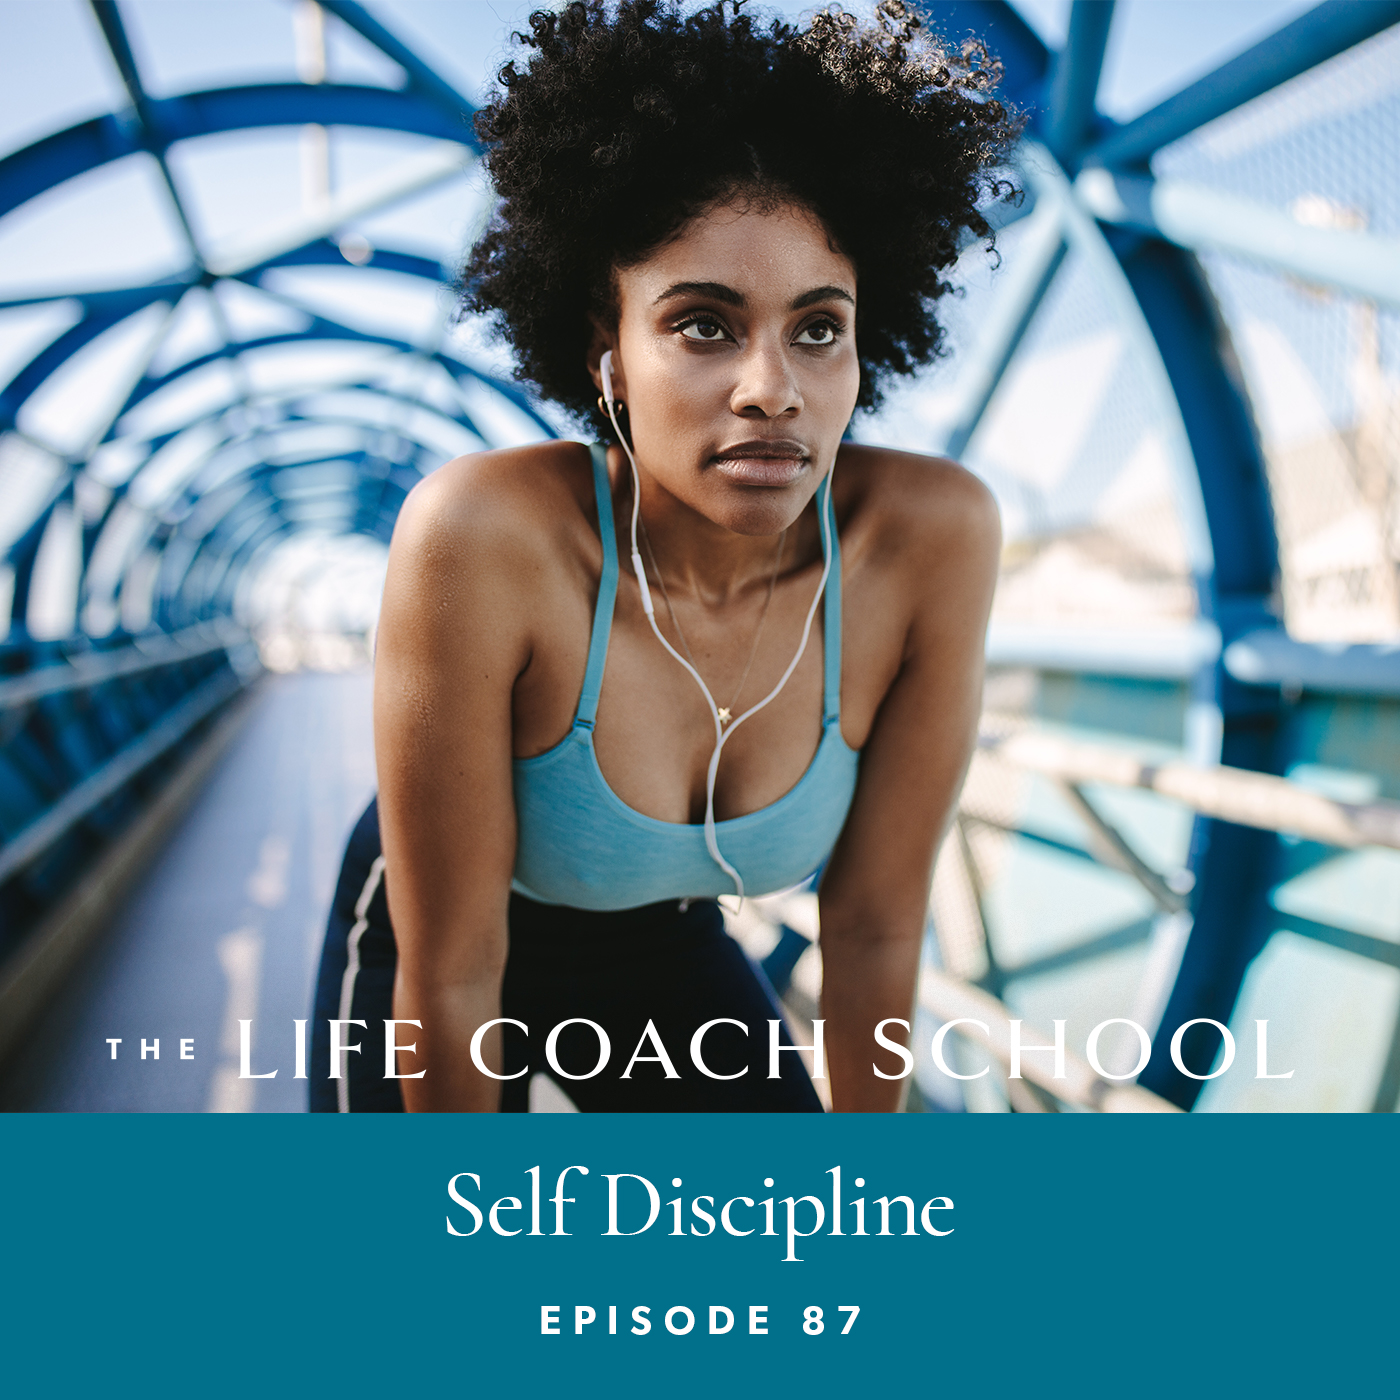 The Life Coach School Podcast with Brooke Castillo | Episode 87 | Self Discipline